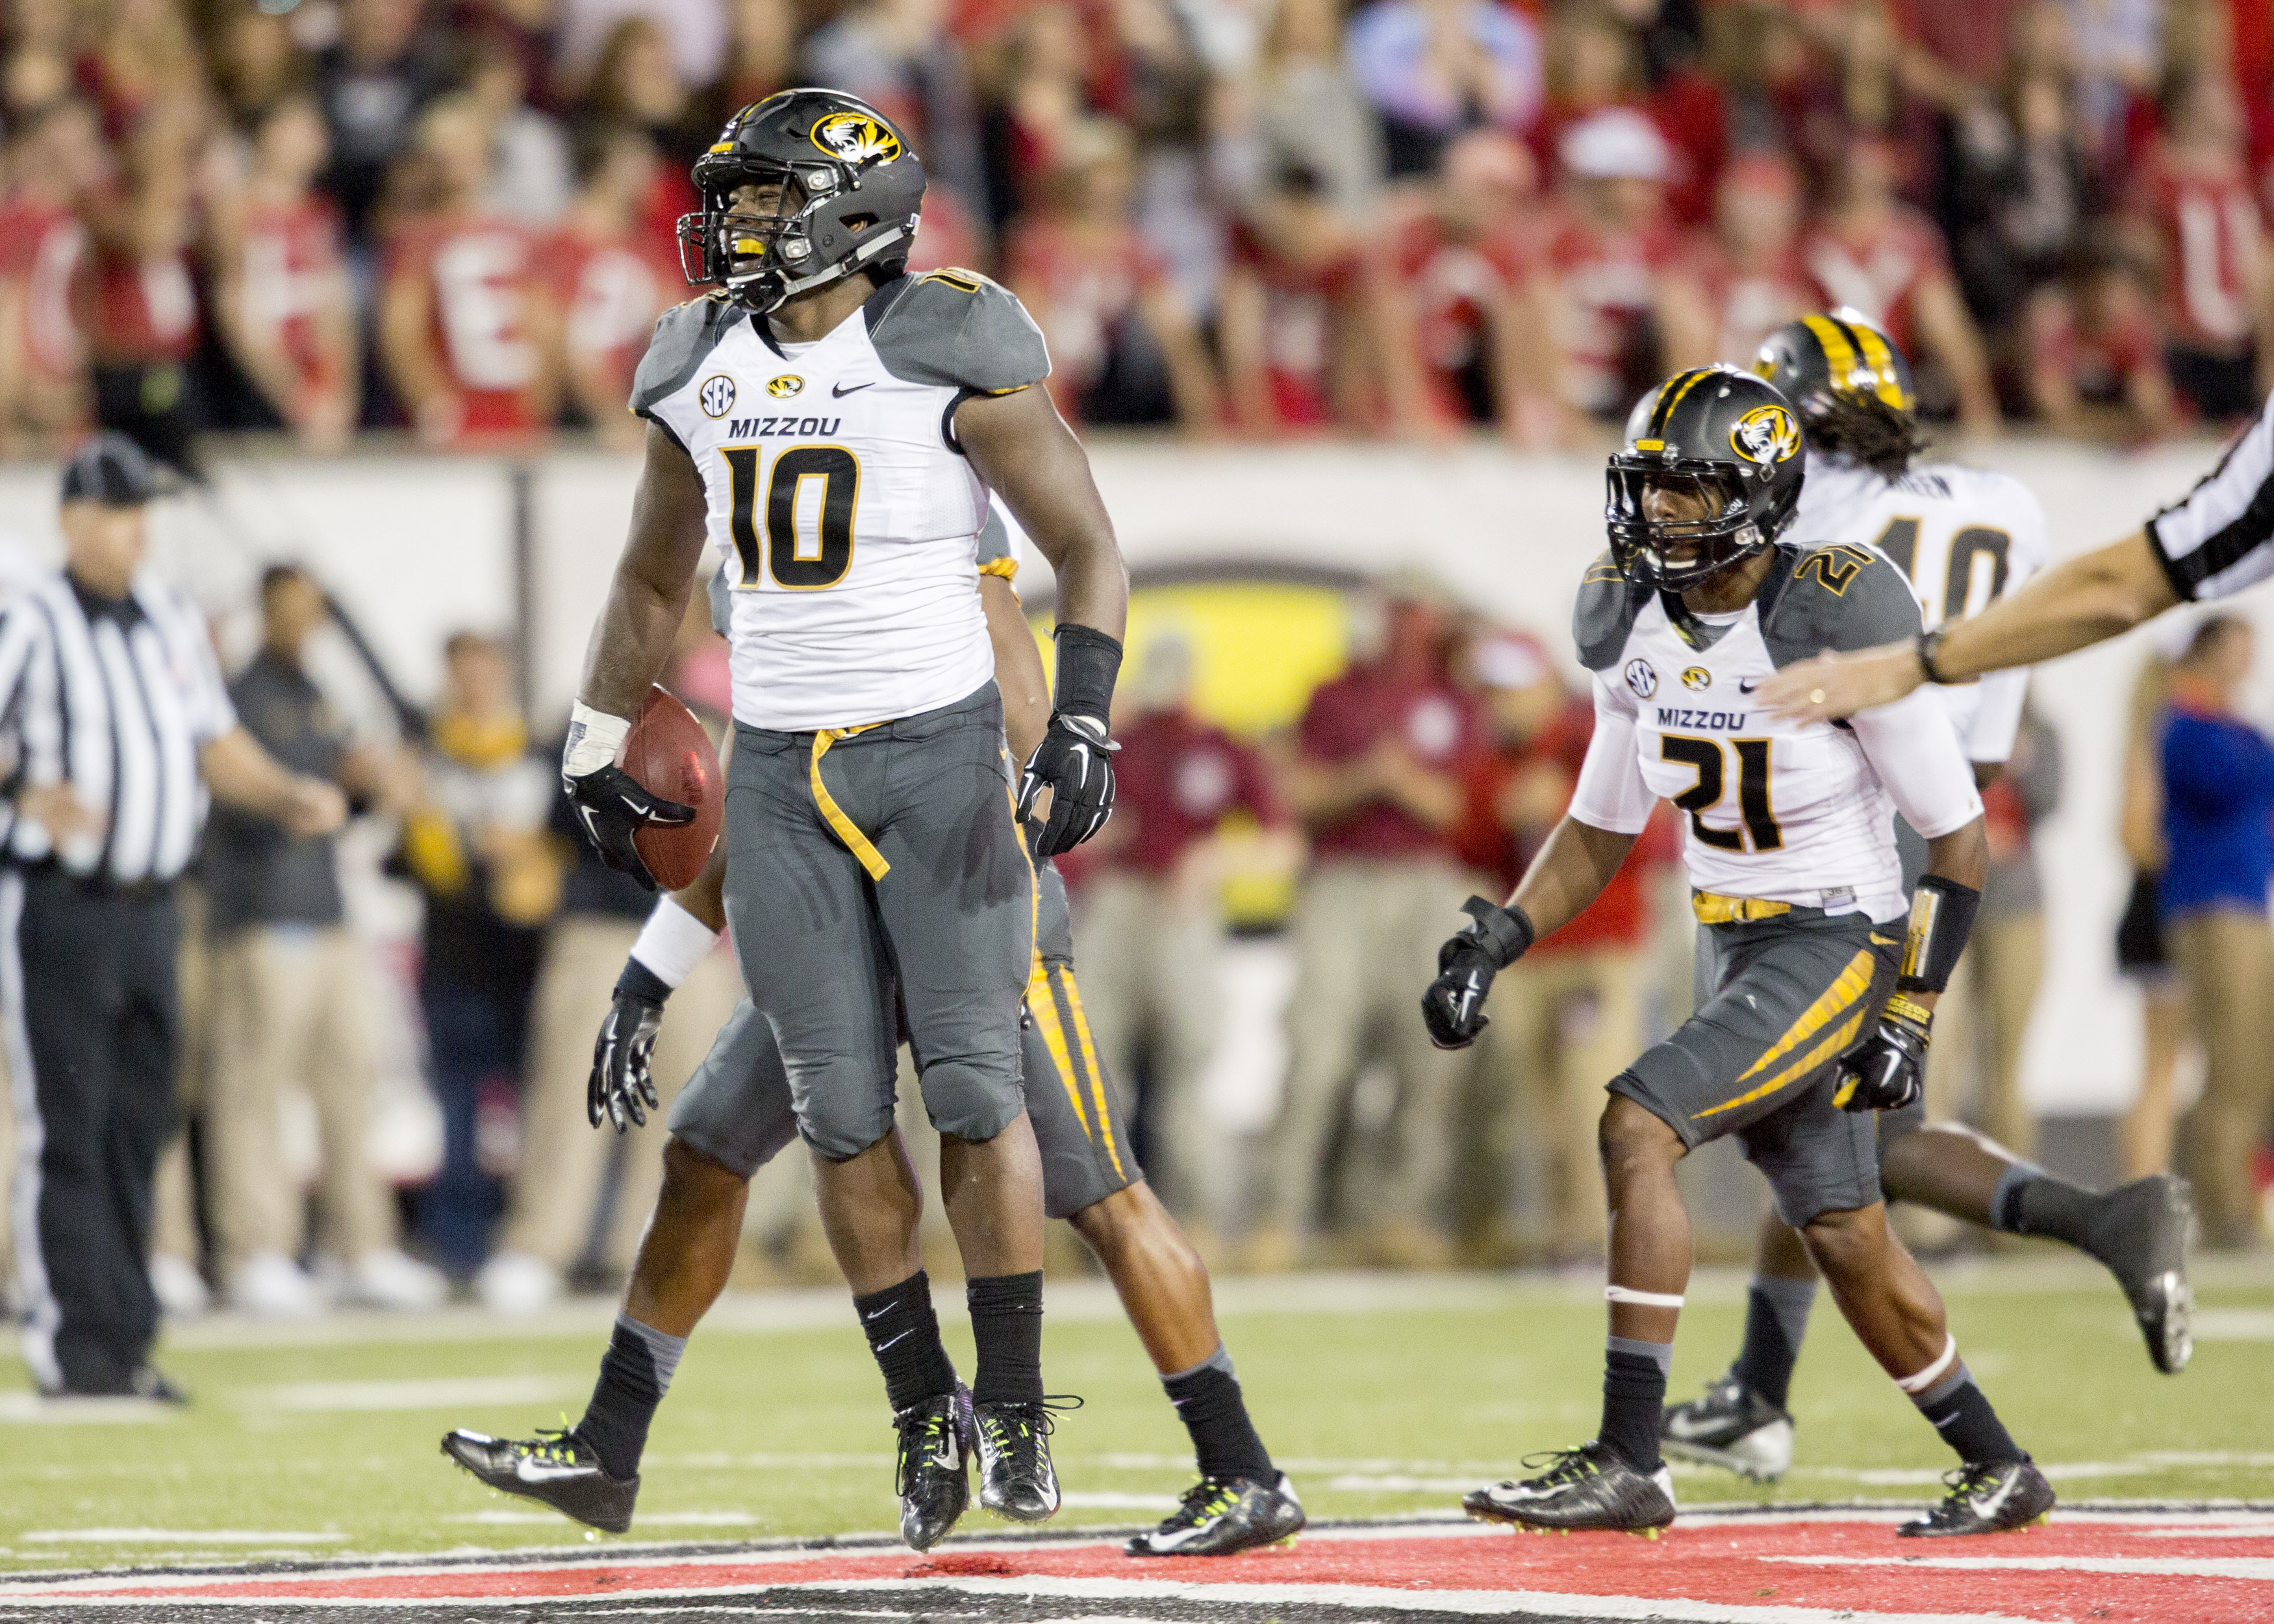 Missouri linebacker Kentrell Brothers (10) celebrates with the defense after he intercepted an Arkansas State pass during the second half of an NCAA college football game, Saturday, Sept. 12, 2015, in Jonesboro, Ark. (AP Photo/Gareth Patterson)